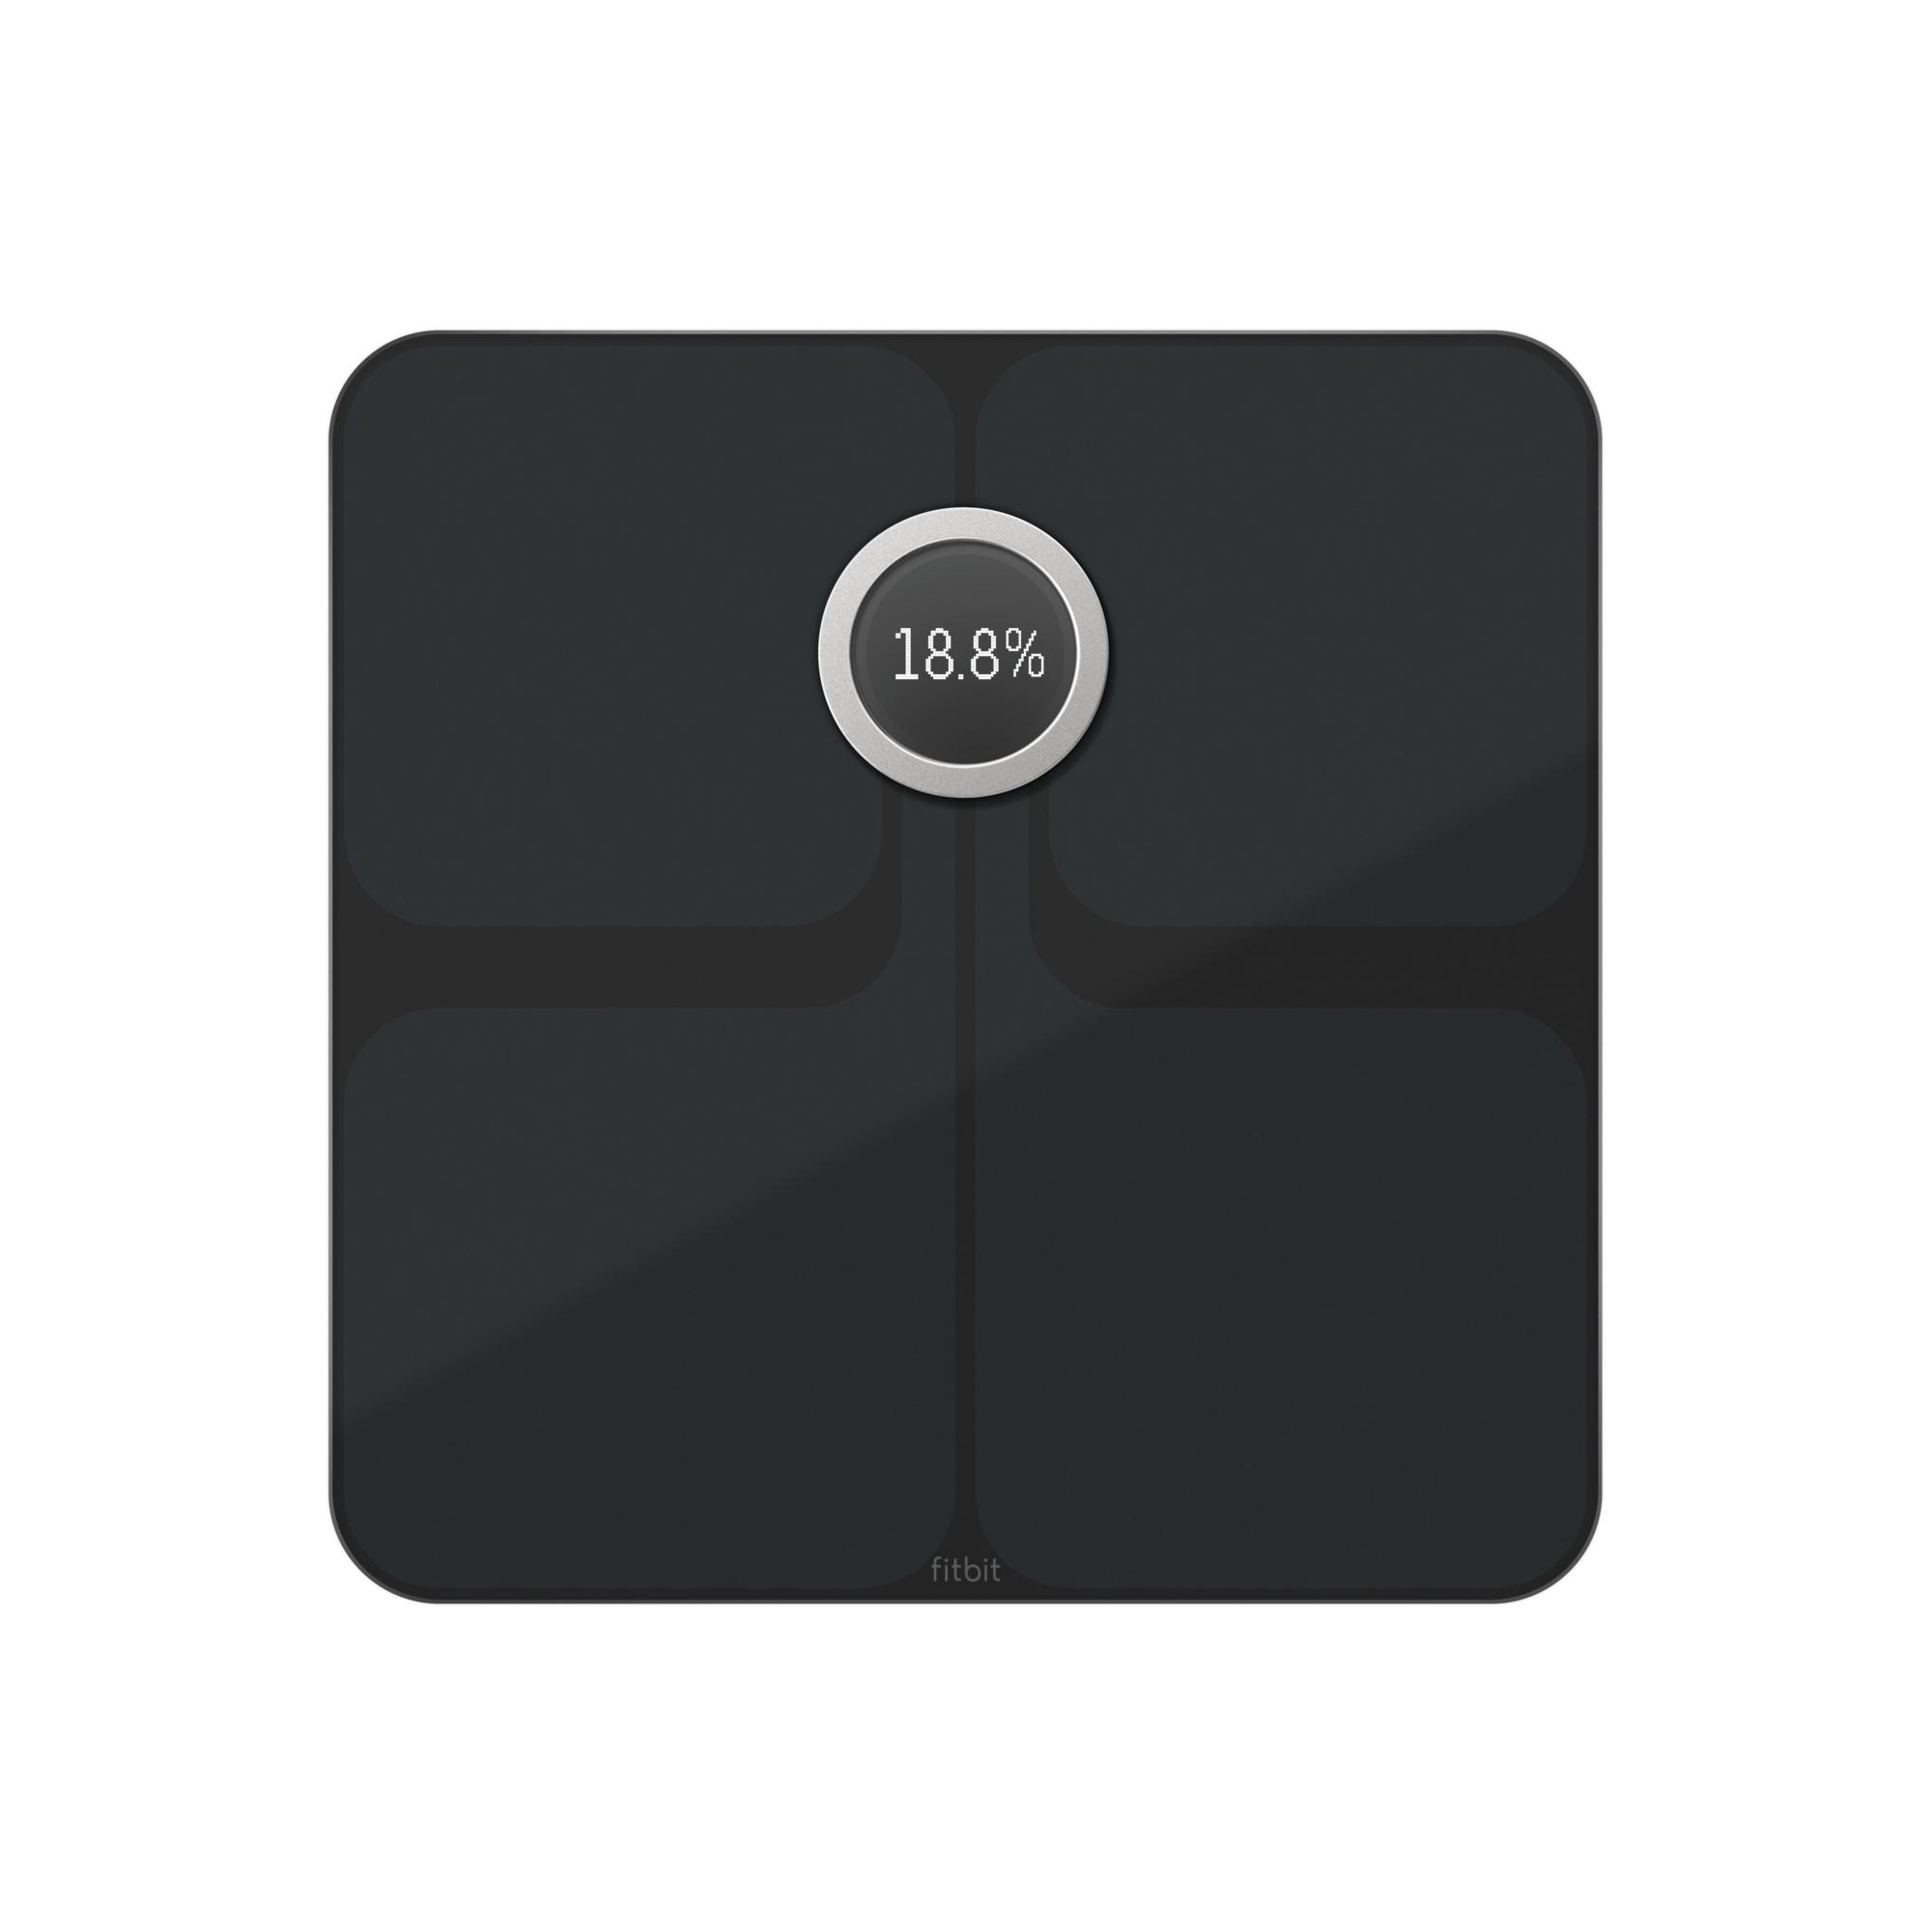 Get The Best Price For Fitbit Aria 2 Black Wi Fi Smart Scale